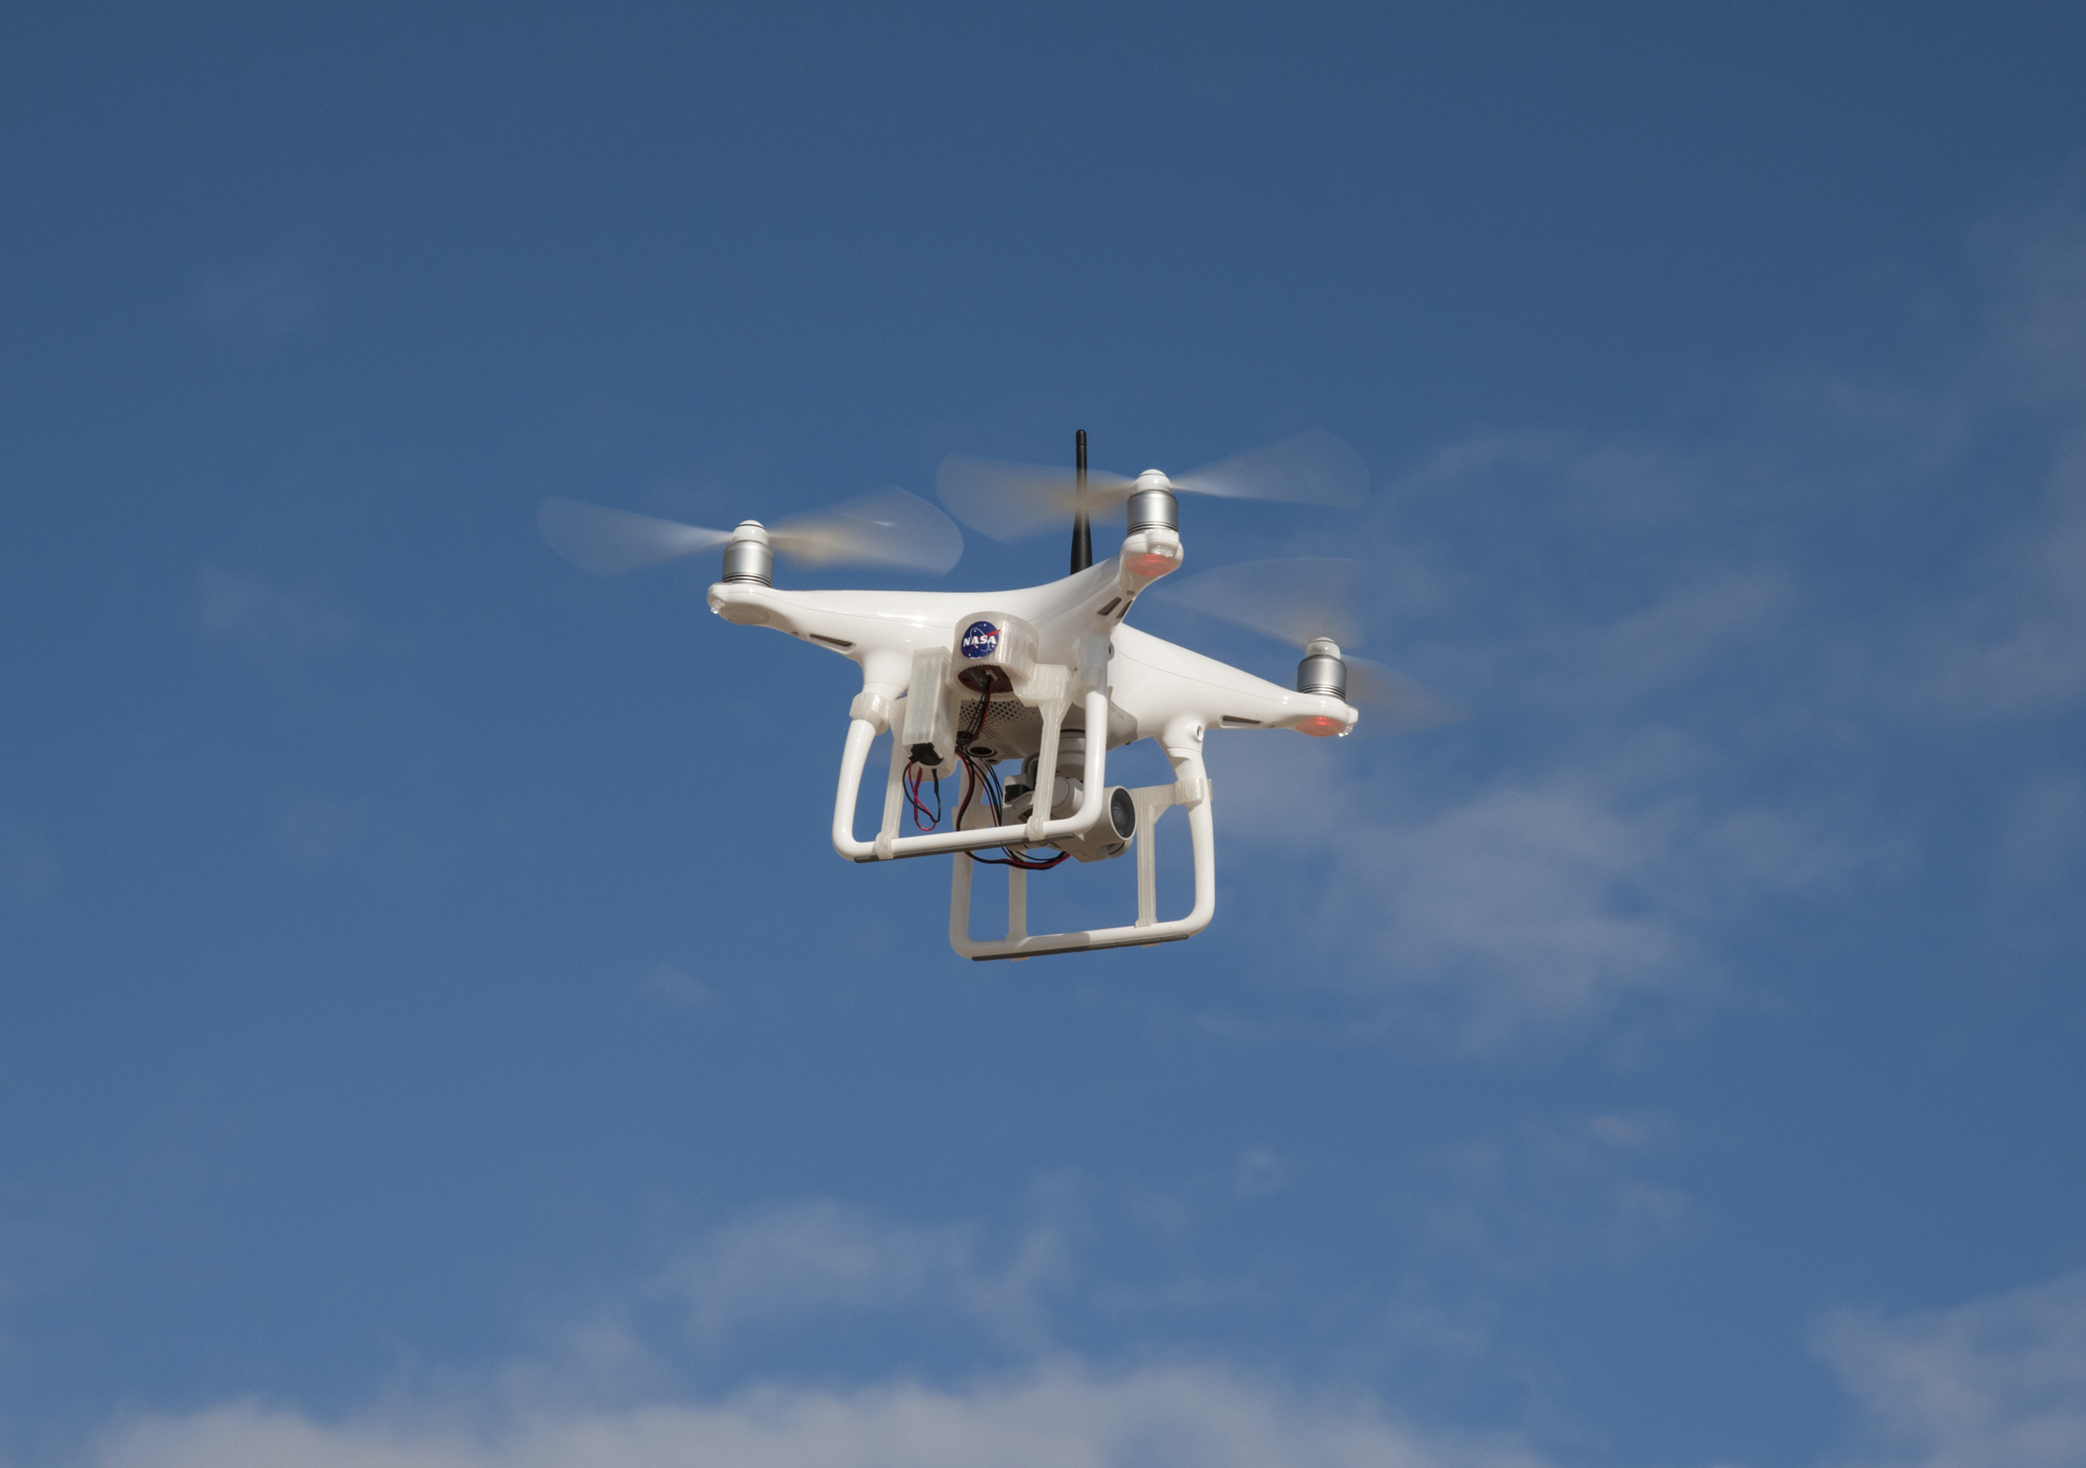 A phantom 4 unmanned aircraft system in flight